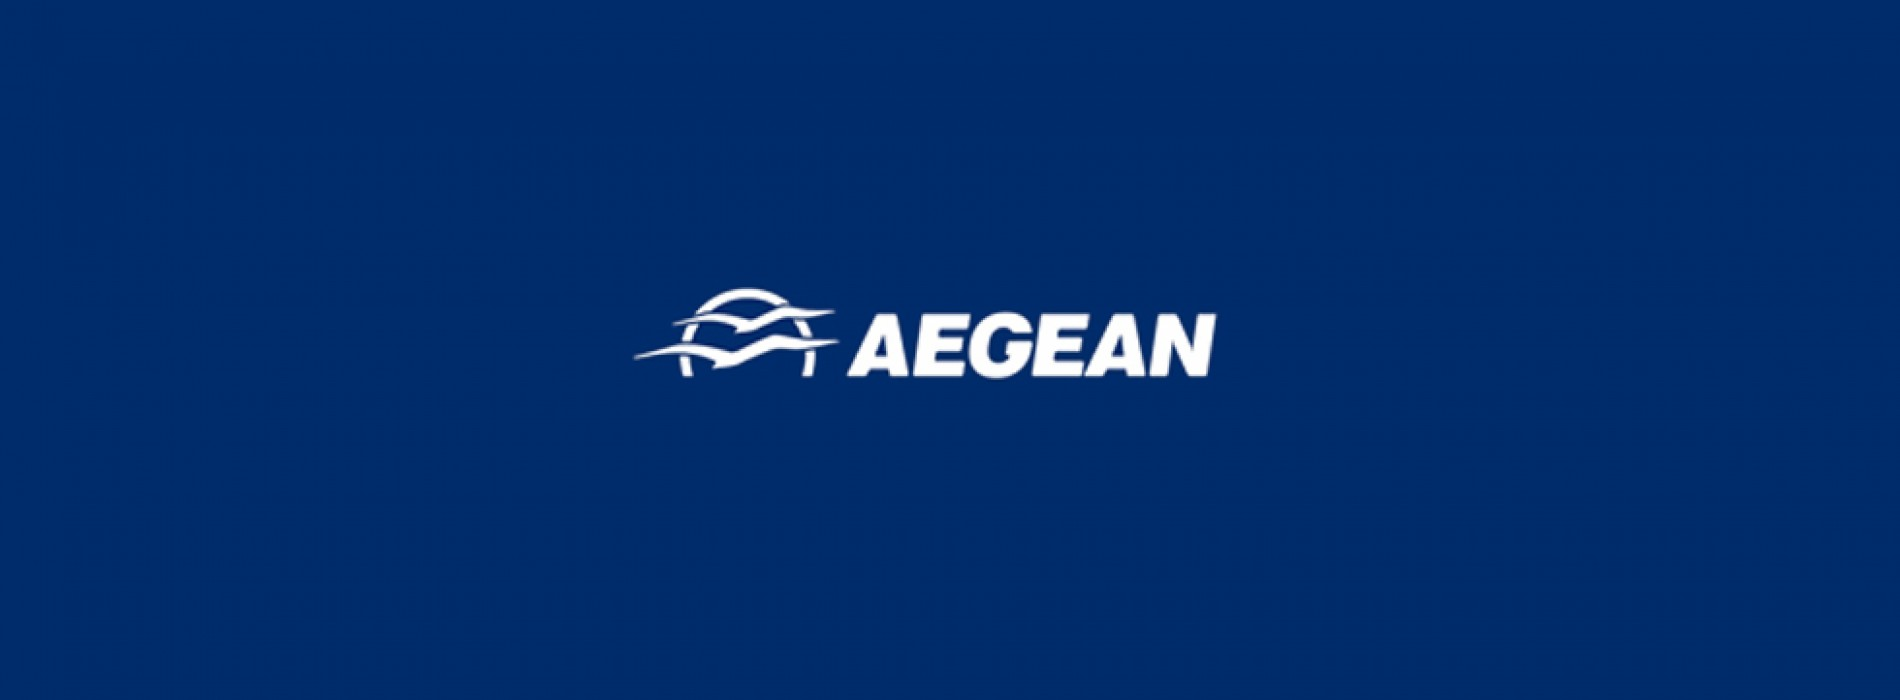 Aegean Airlines to implement Sabre AirVision Revenue Optimizer, enabling real-time revenue management